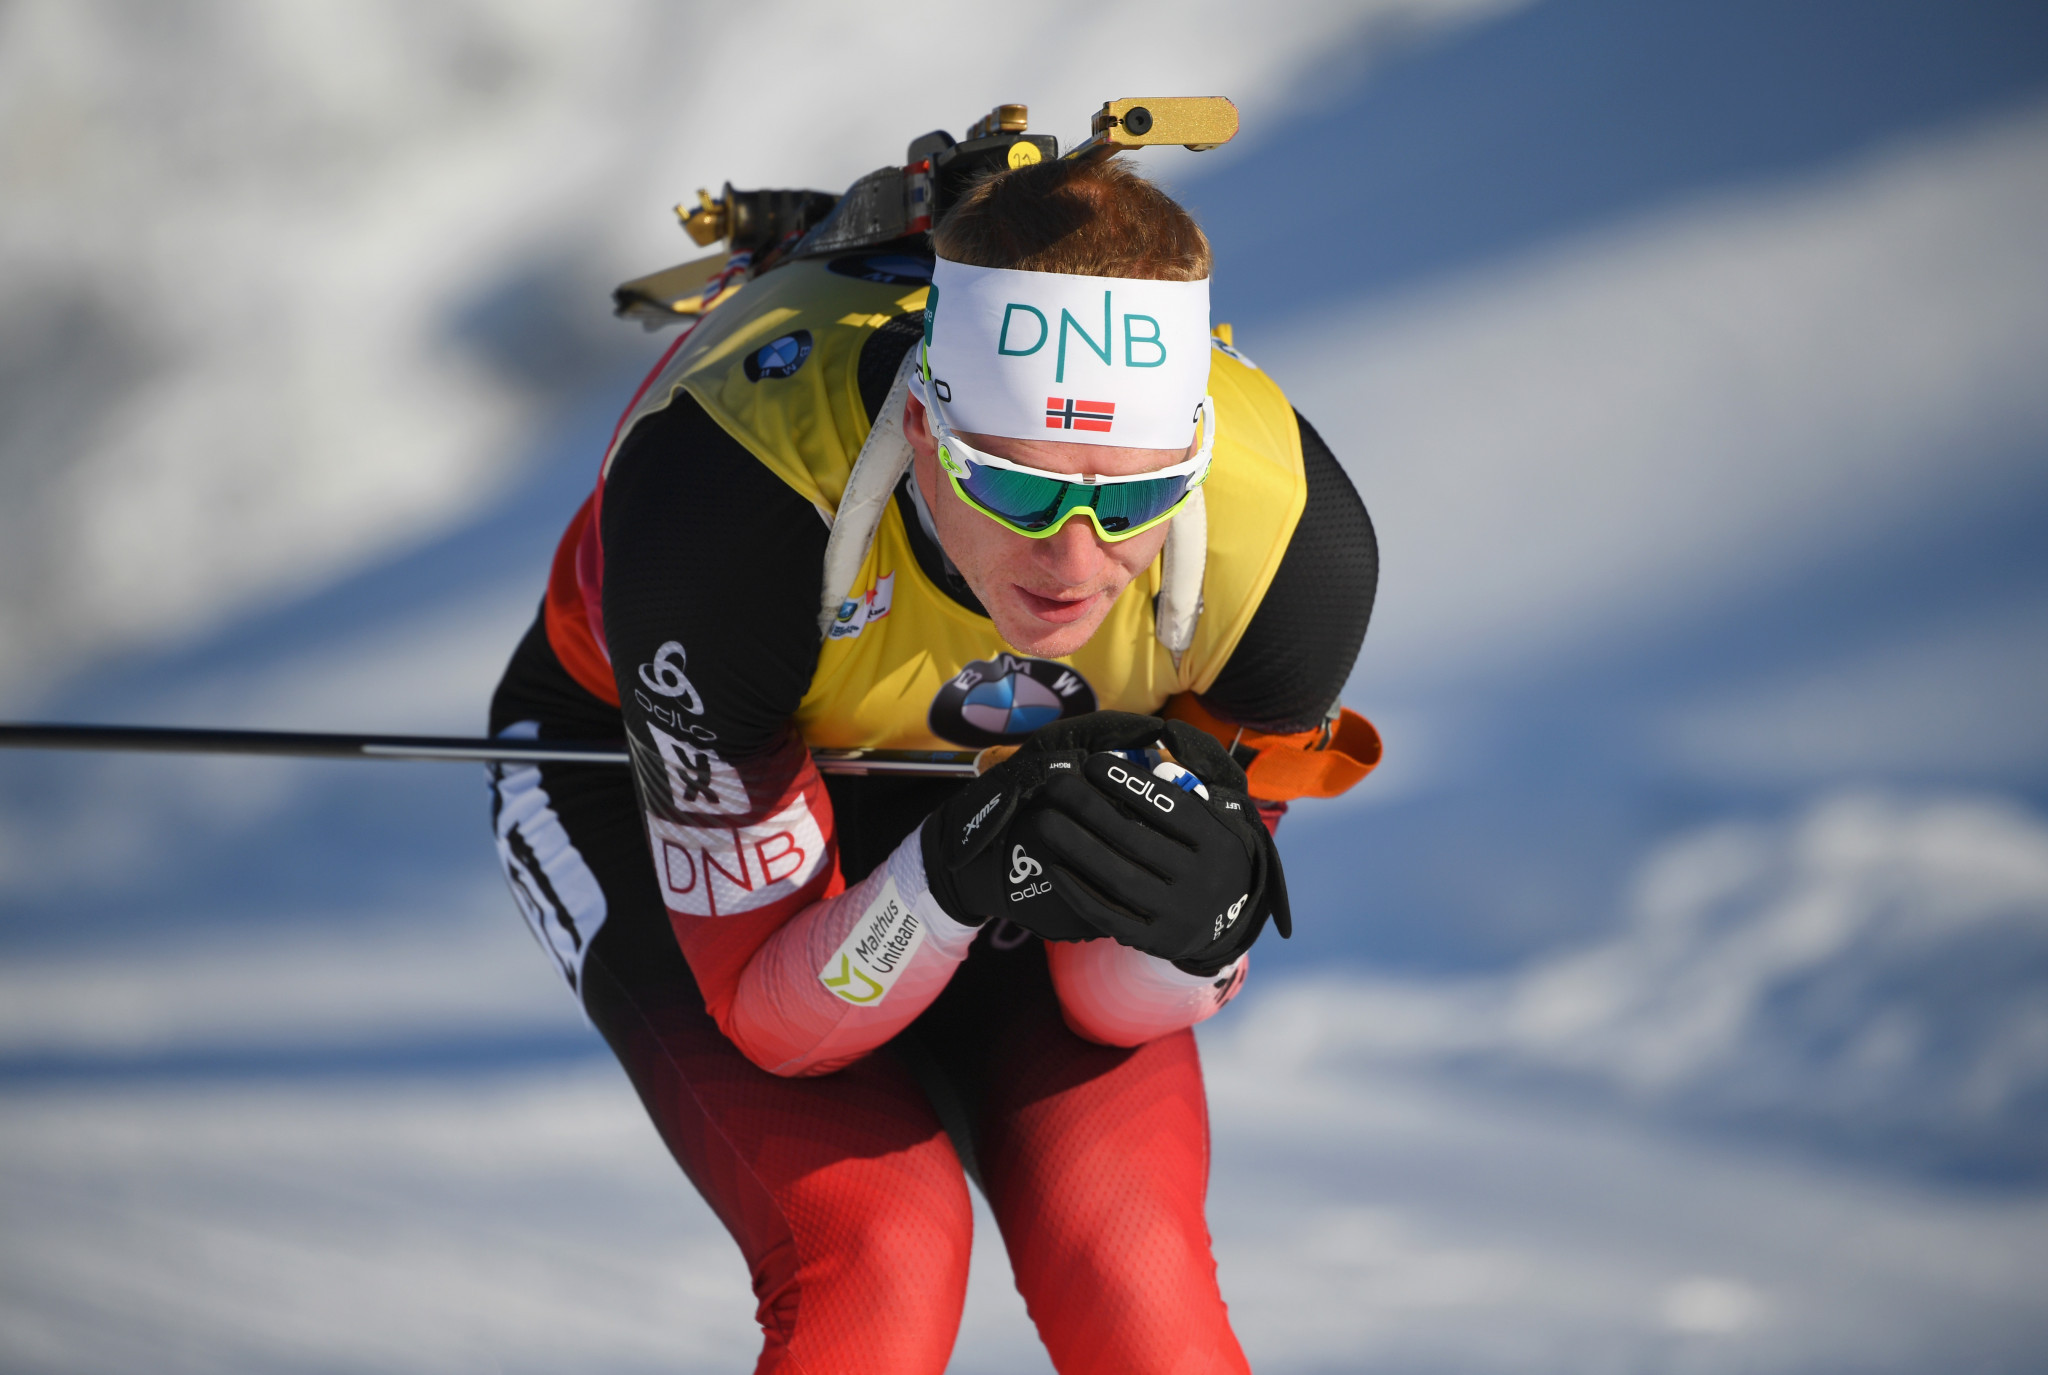 Johannes Thingnes Bø made it three wins from four during this World Cup season ©Getty Images